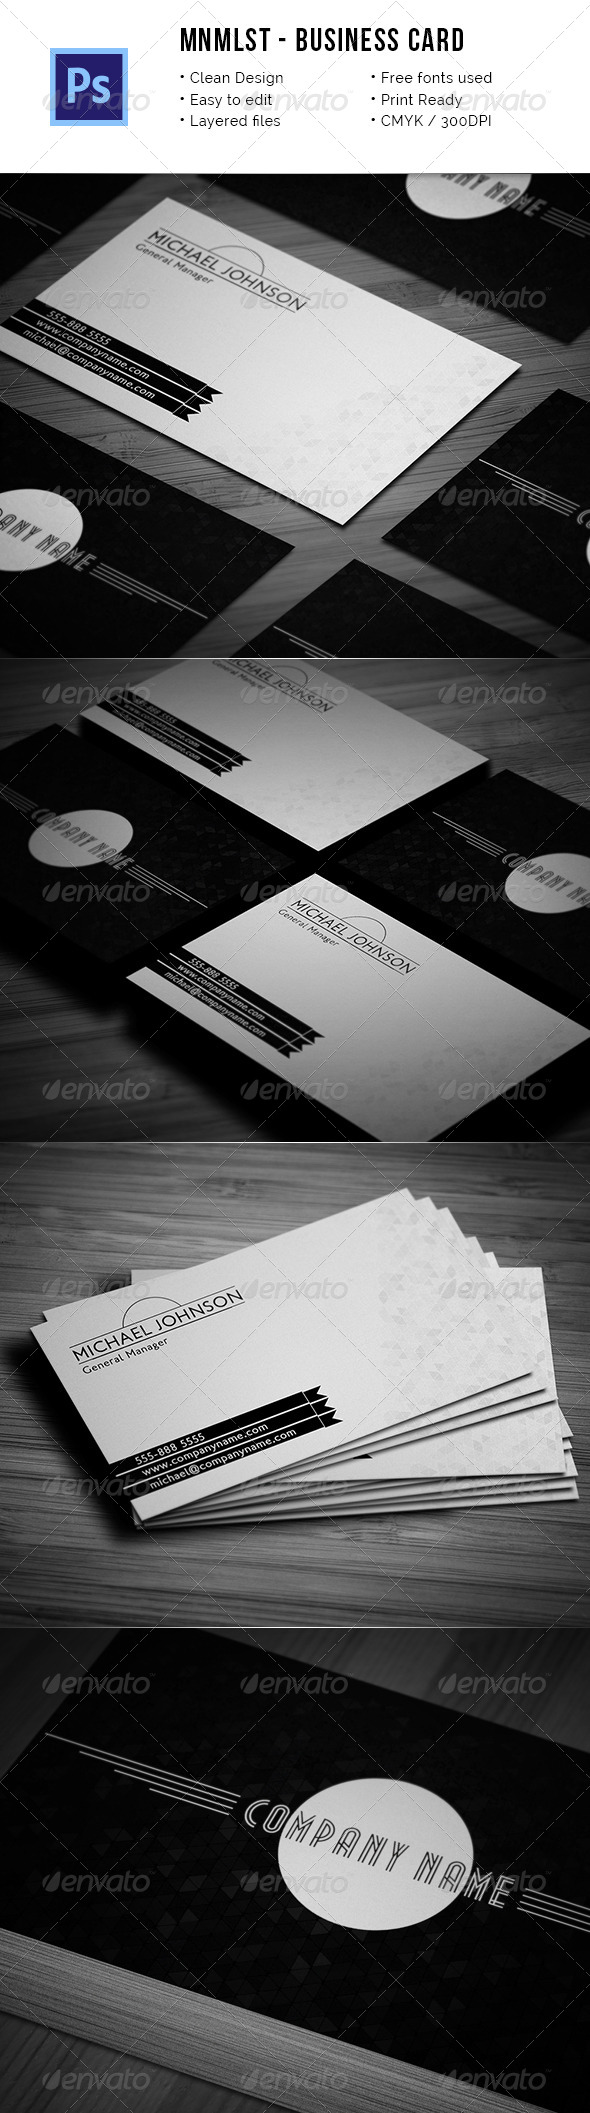 Mnmlst - Classic Minimalist Business Card - Retro/Vintage Business Cards